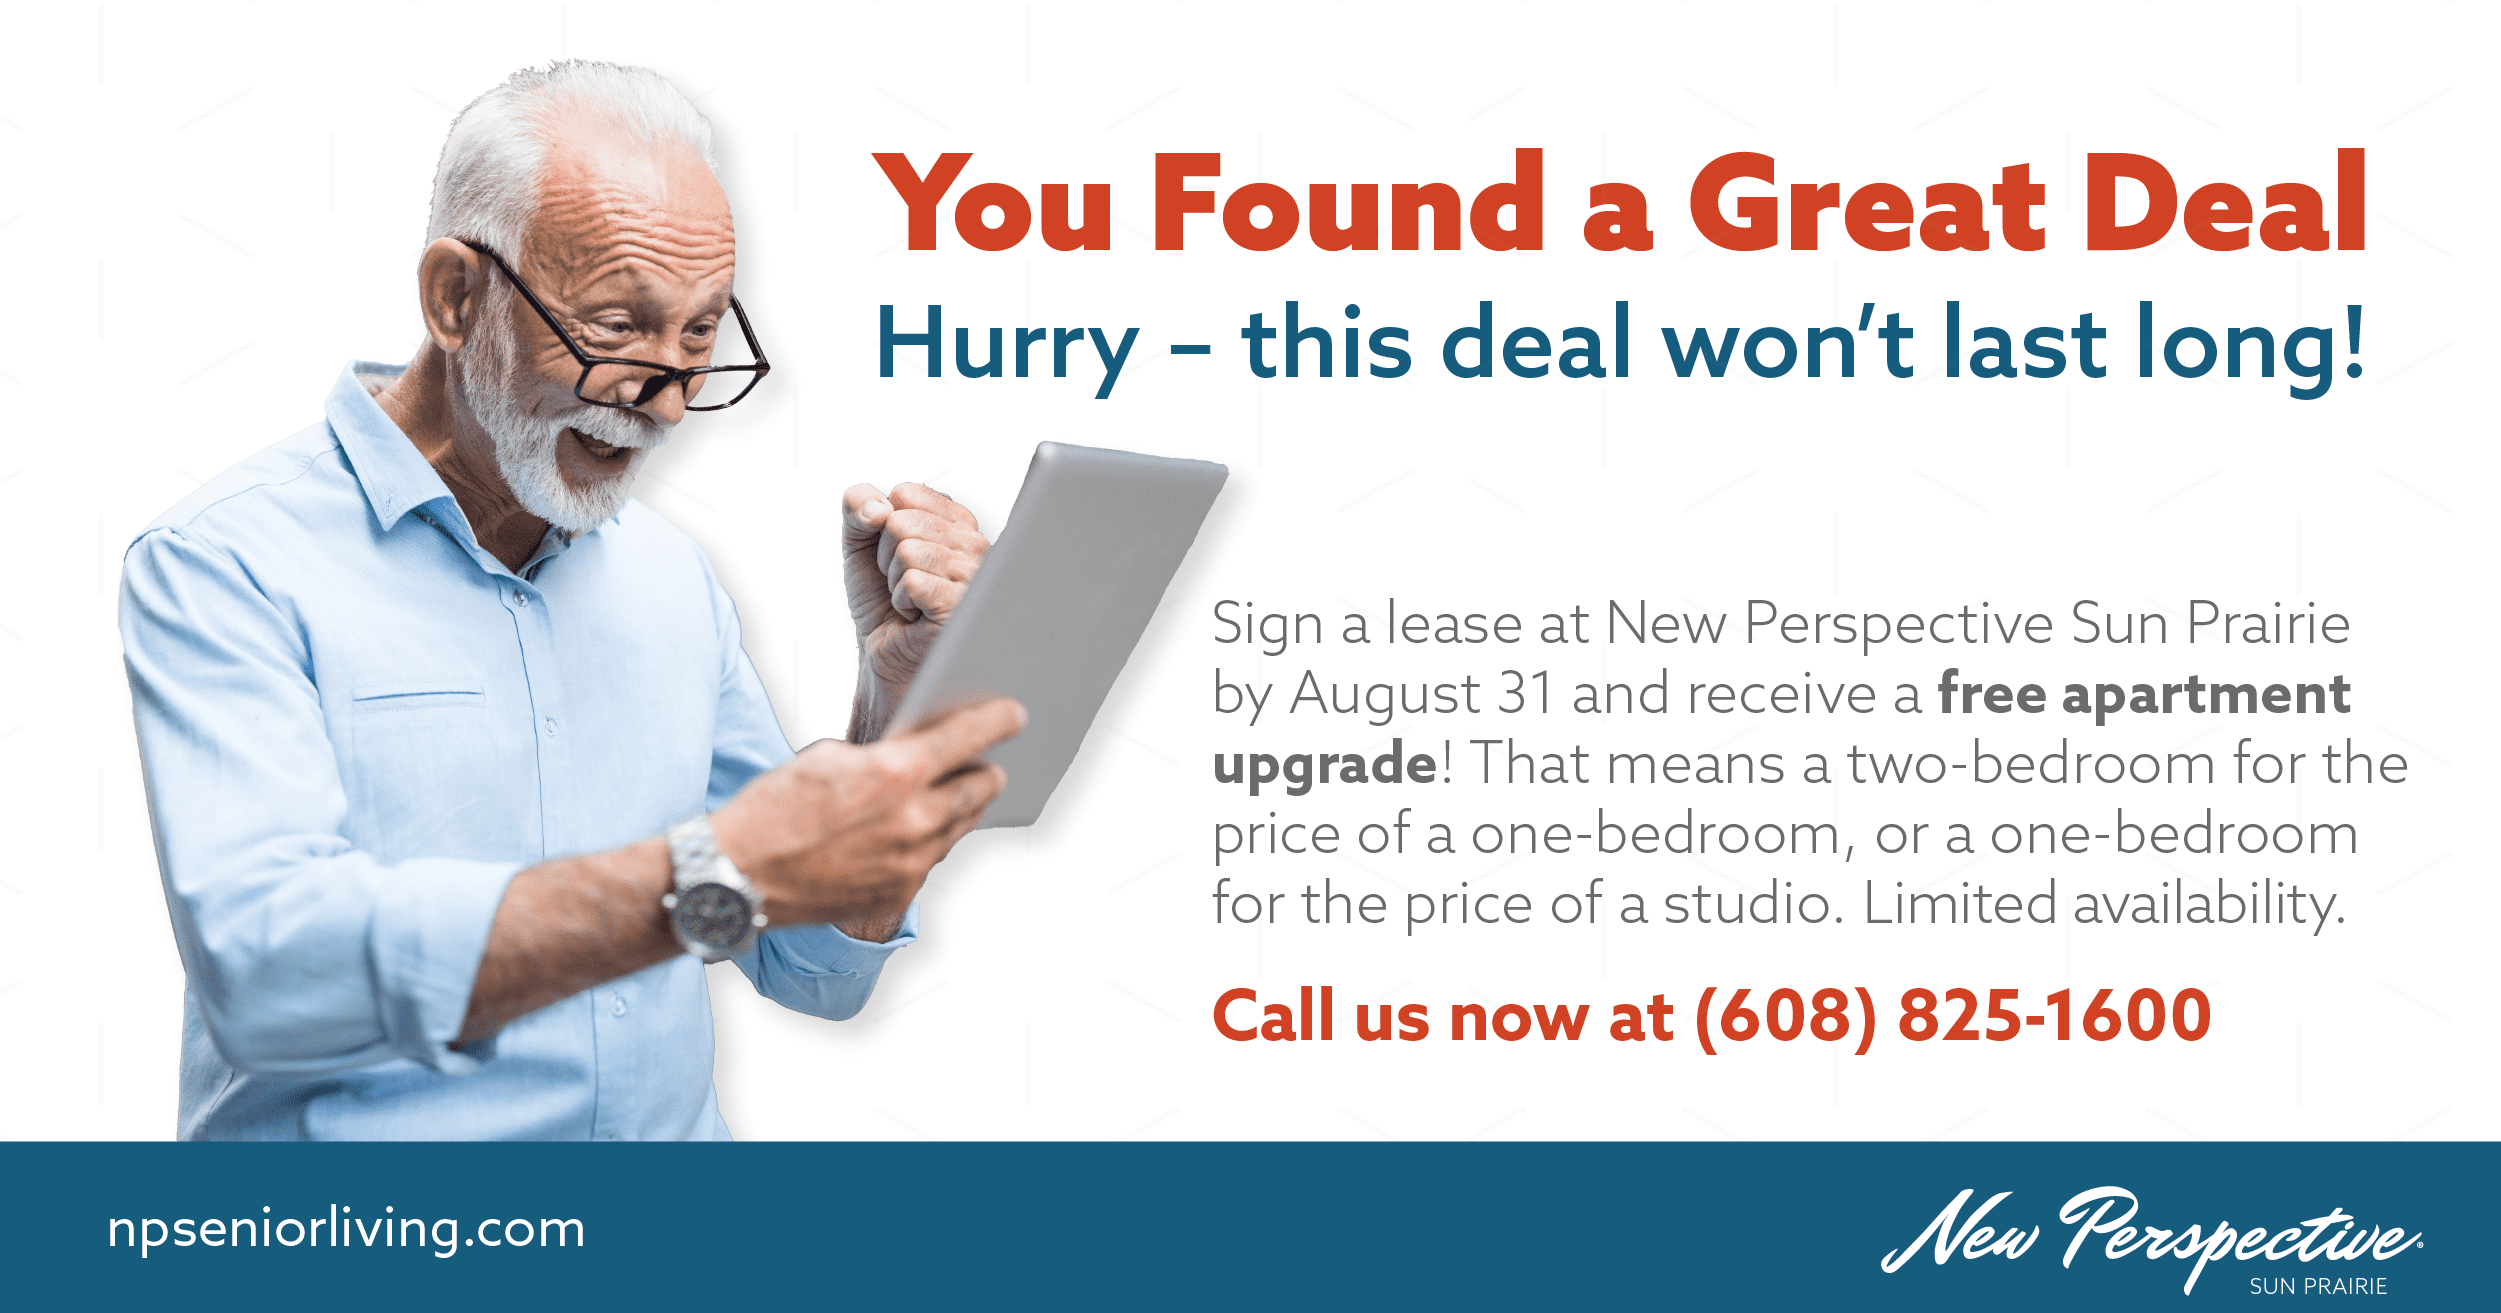 You Found a Great Deal. Hurry – this deal won't last long! Sign a lease at New Perspective Sun Prairie by August 31 and receive a free apartment upgrade! That means a two-bedroom for the price of a one-bedroom, or a one-bedroom for the price of a studio. Limited availability.  Call us now at (608) 825-1600